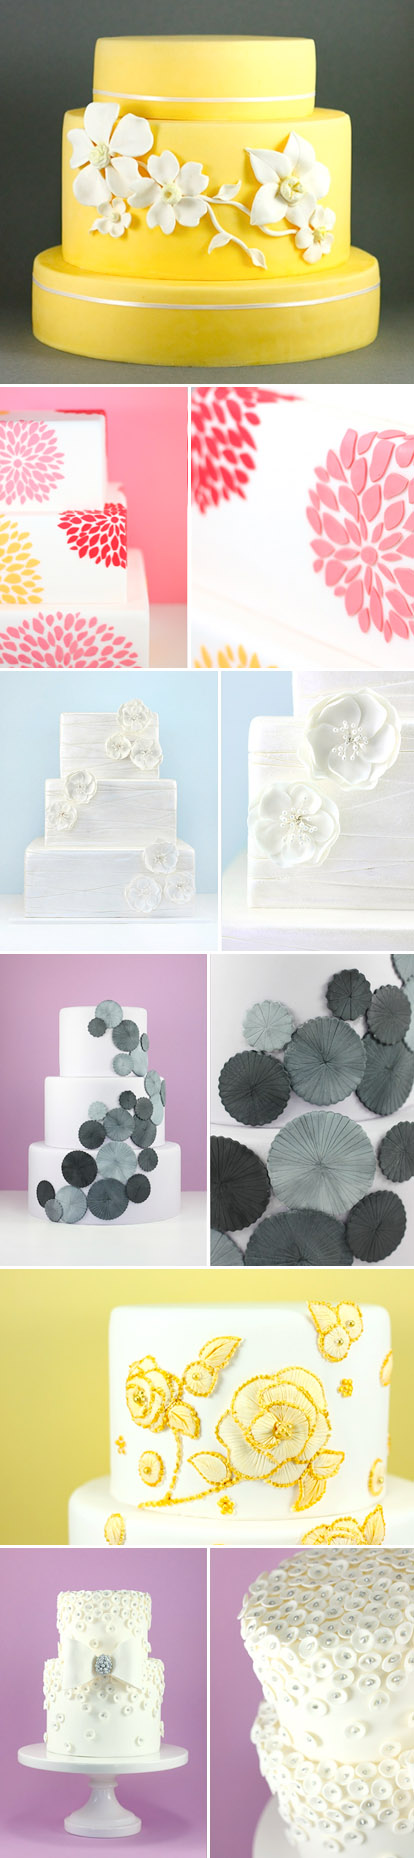 Beautiful, modern fondant wedding cakes, pretty floral cake designs from Eat Cake Be Merry